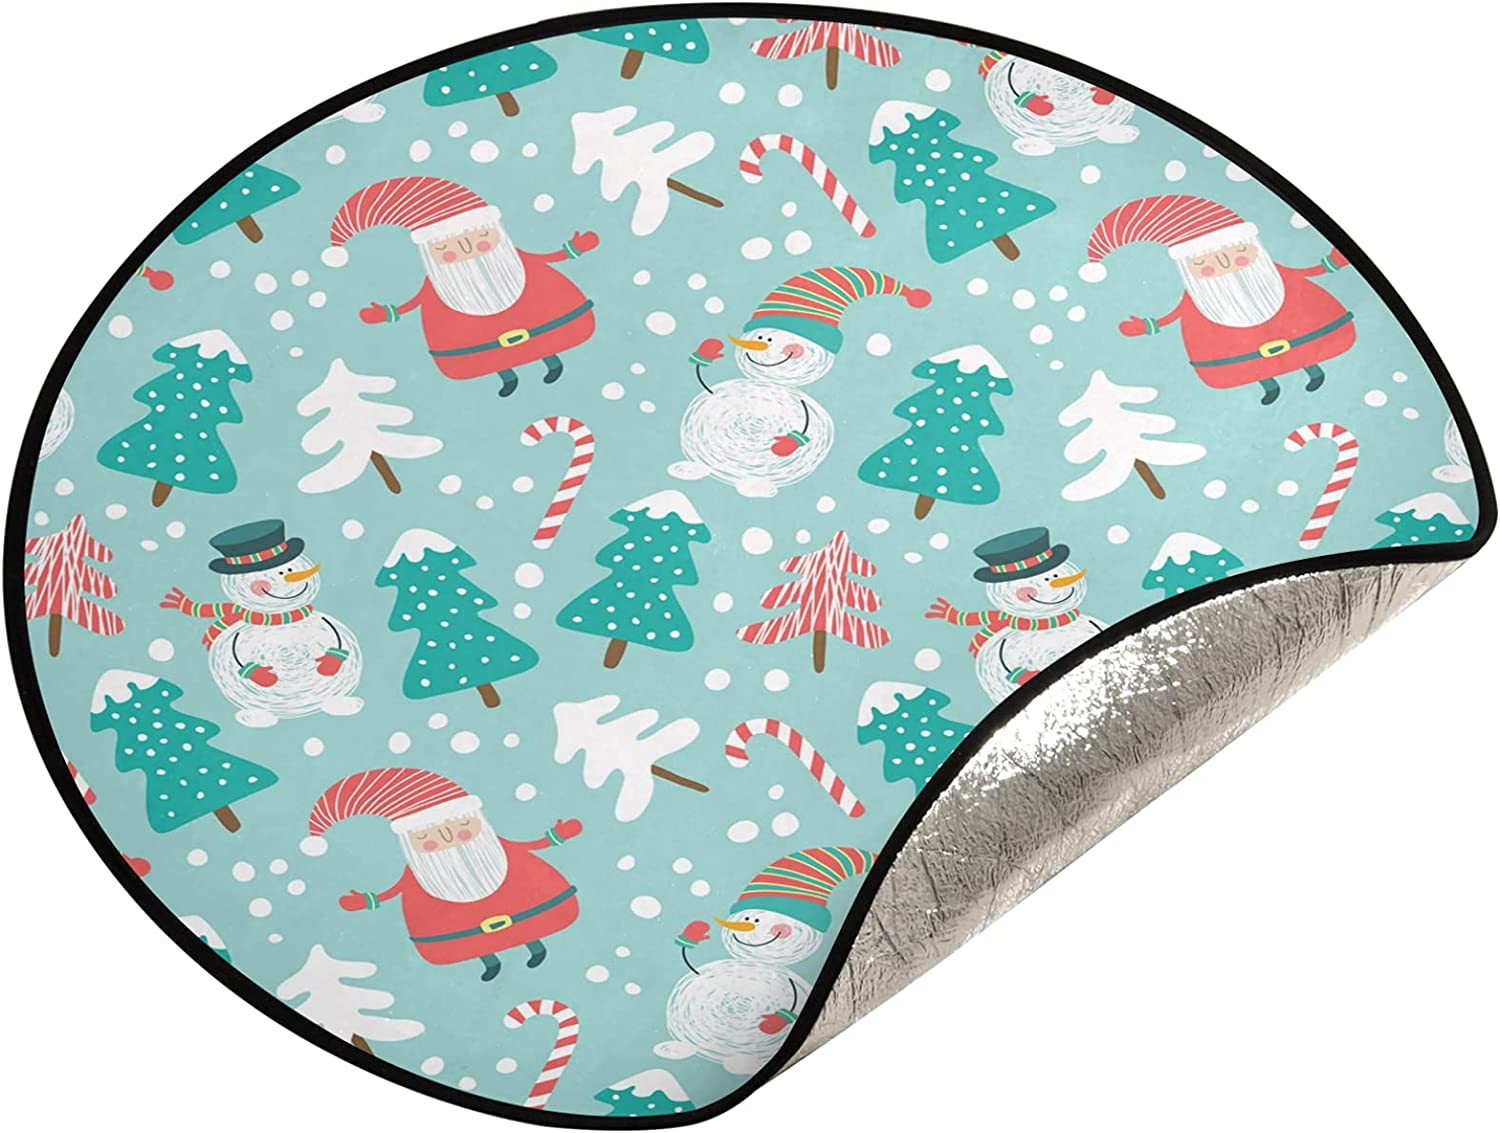 xigua 28.3 Inch Opening large release sale Christmas Tree Merry Stand Mat shop Snowm -